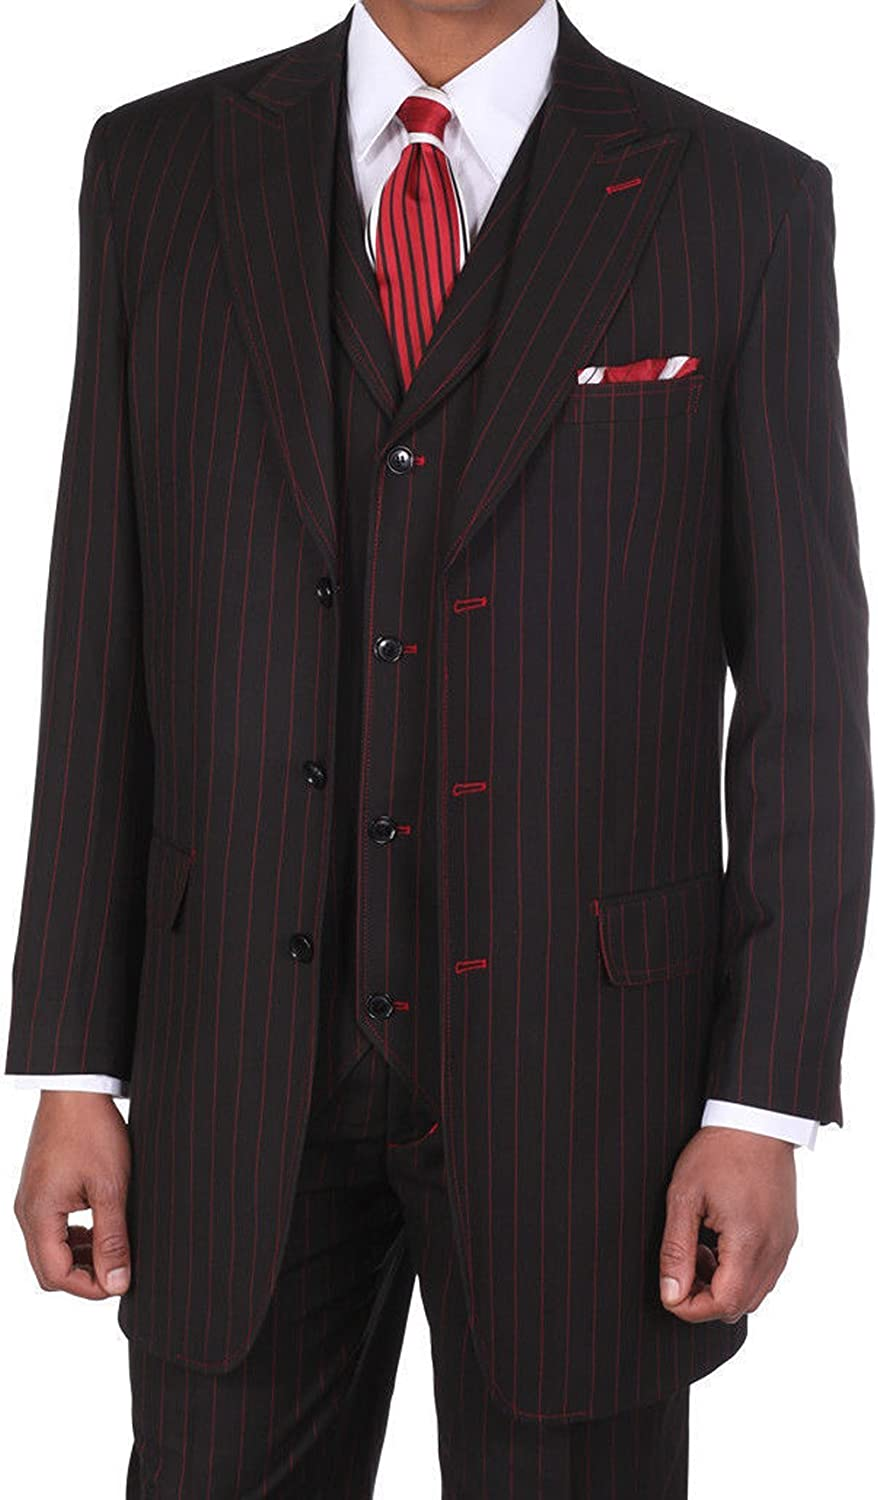 Fortino Landi Pinstripe Design High Fashion Suit with Collared Vest 5903V